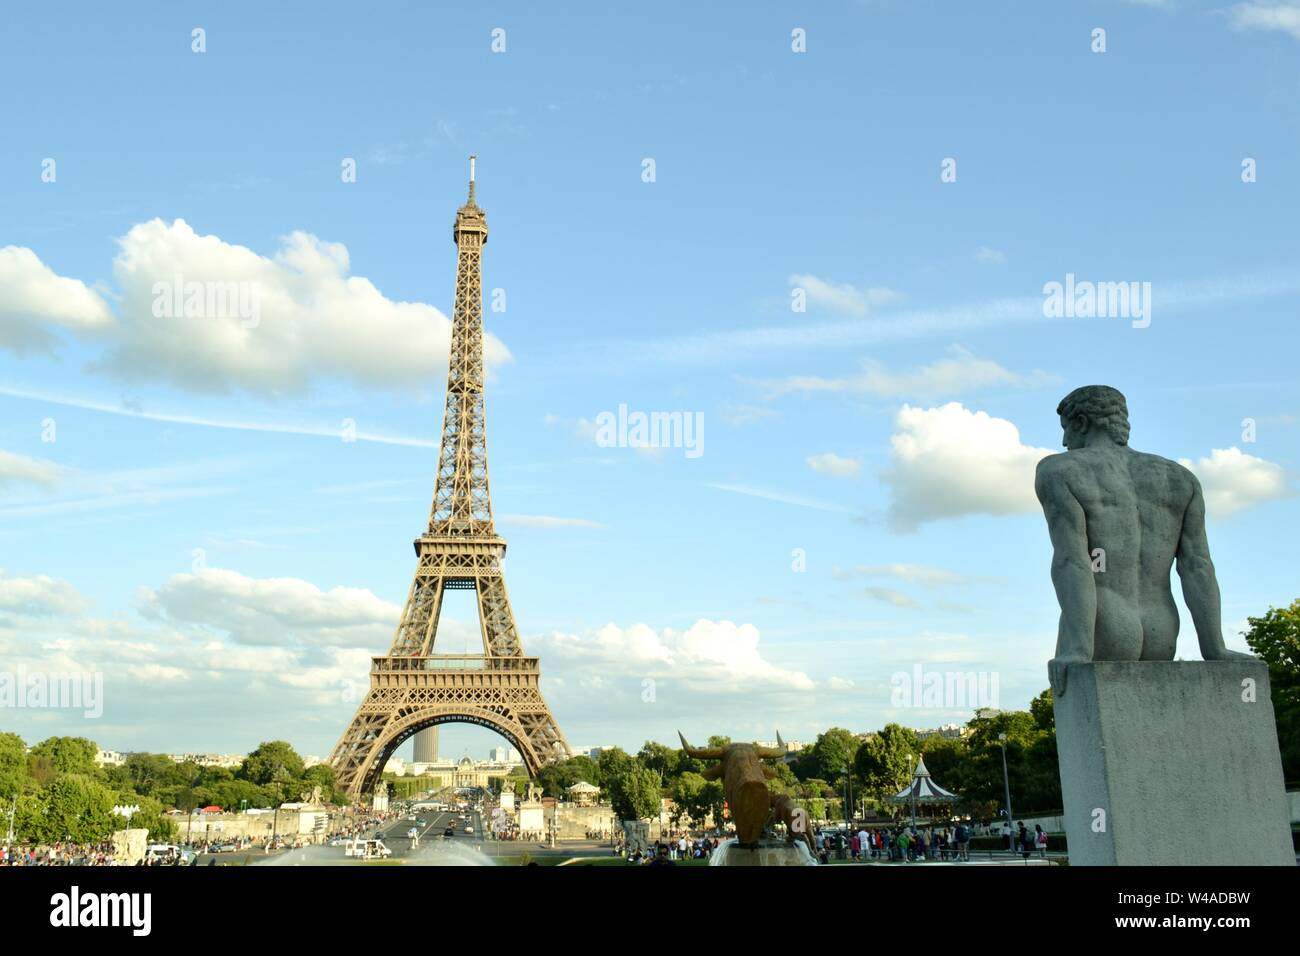 View to the statue called Man, l' Homme, at the fountain of Warsaw and the Eiffel Tower in the background. Stock Photo